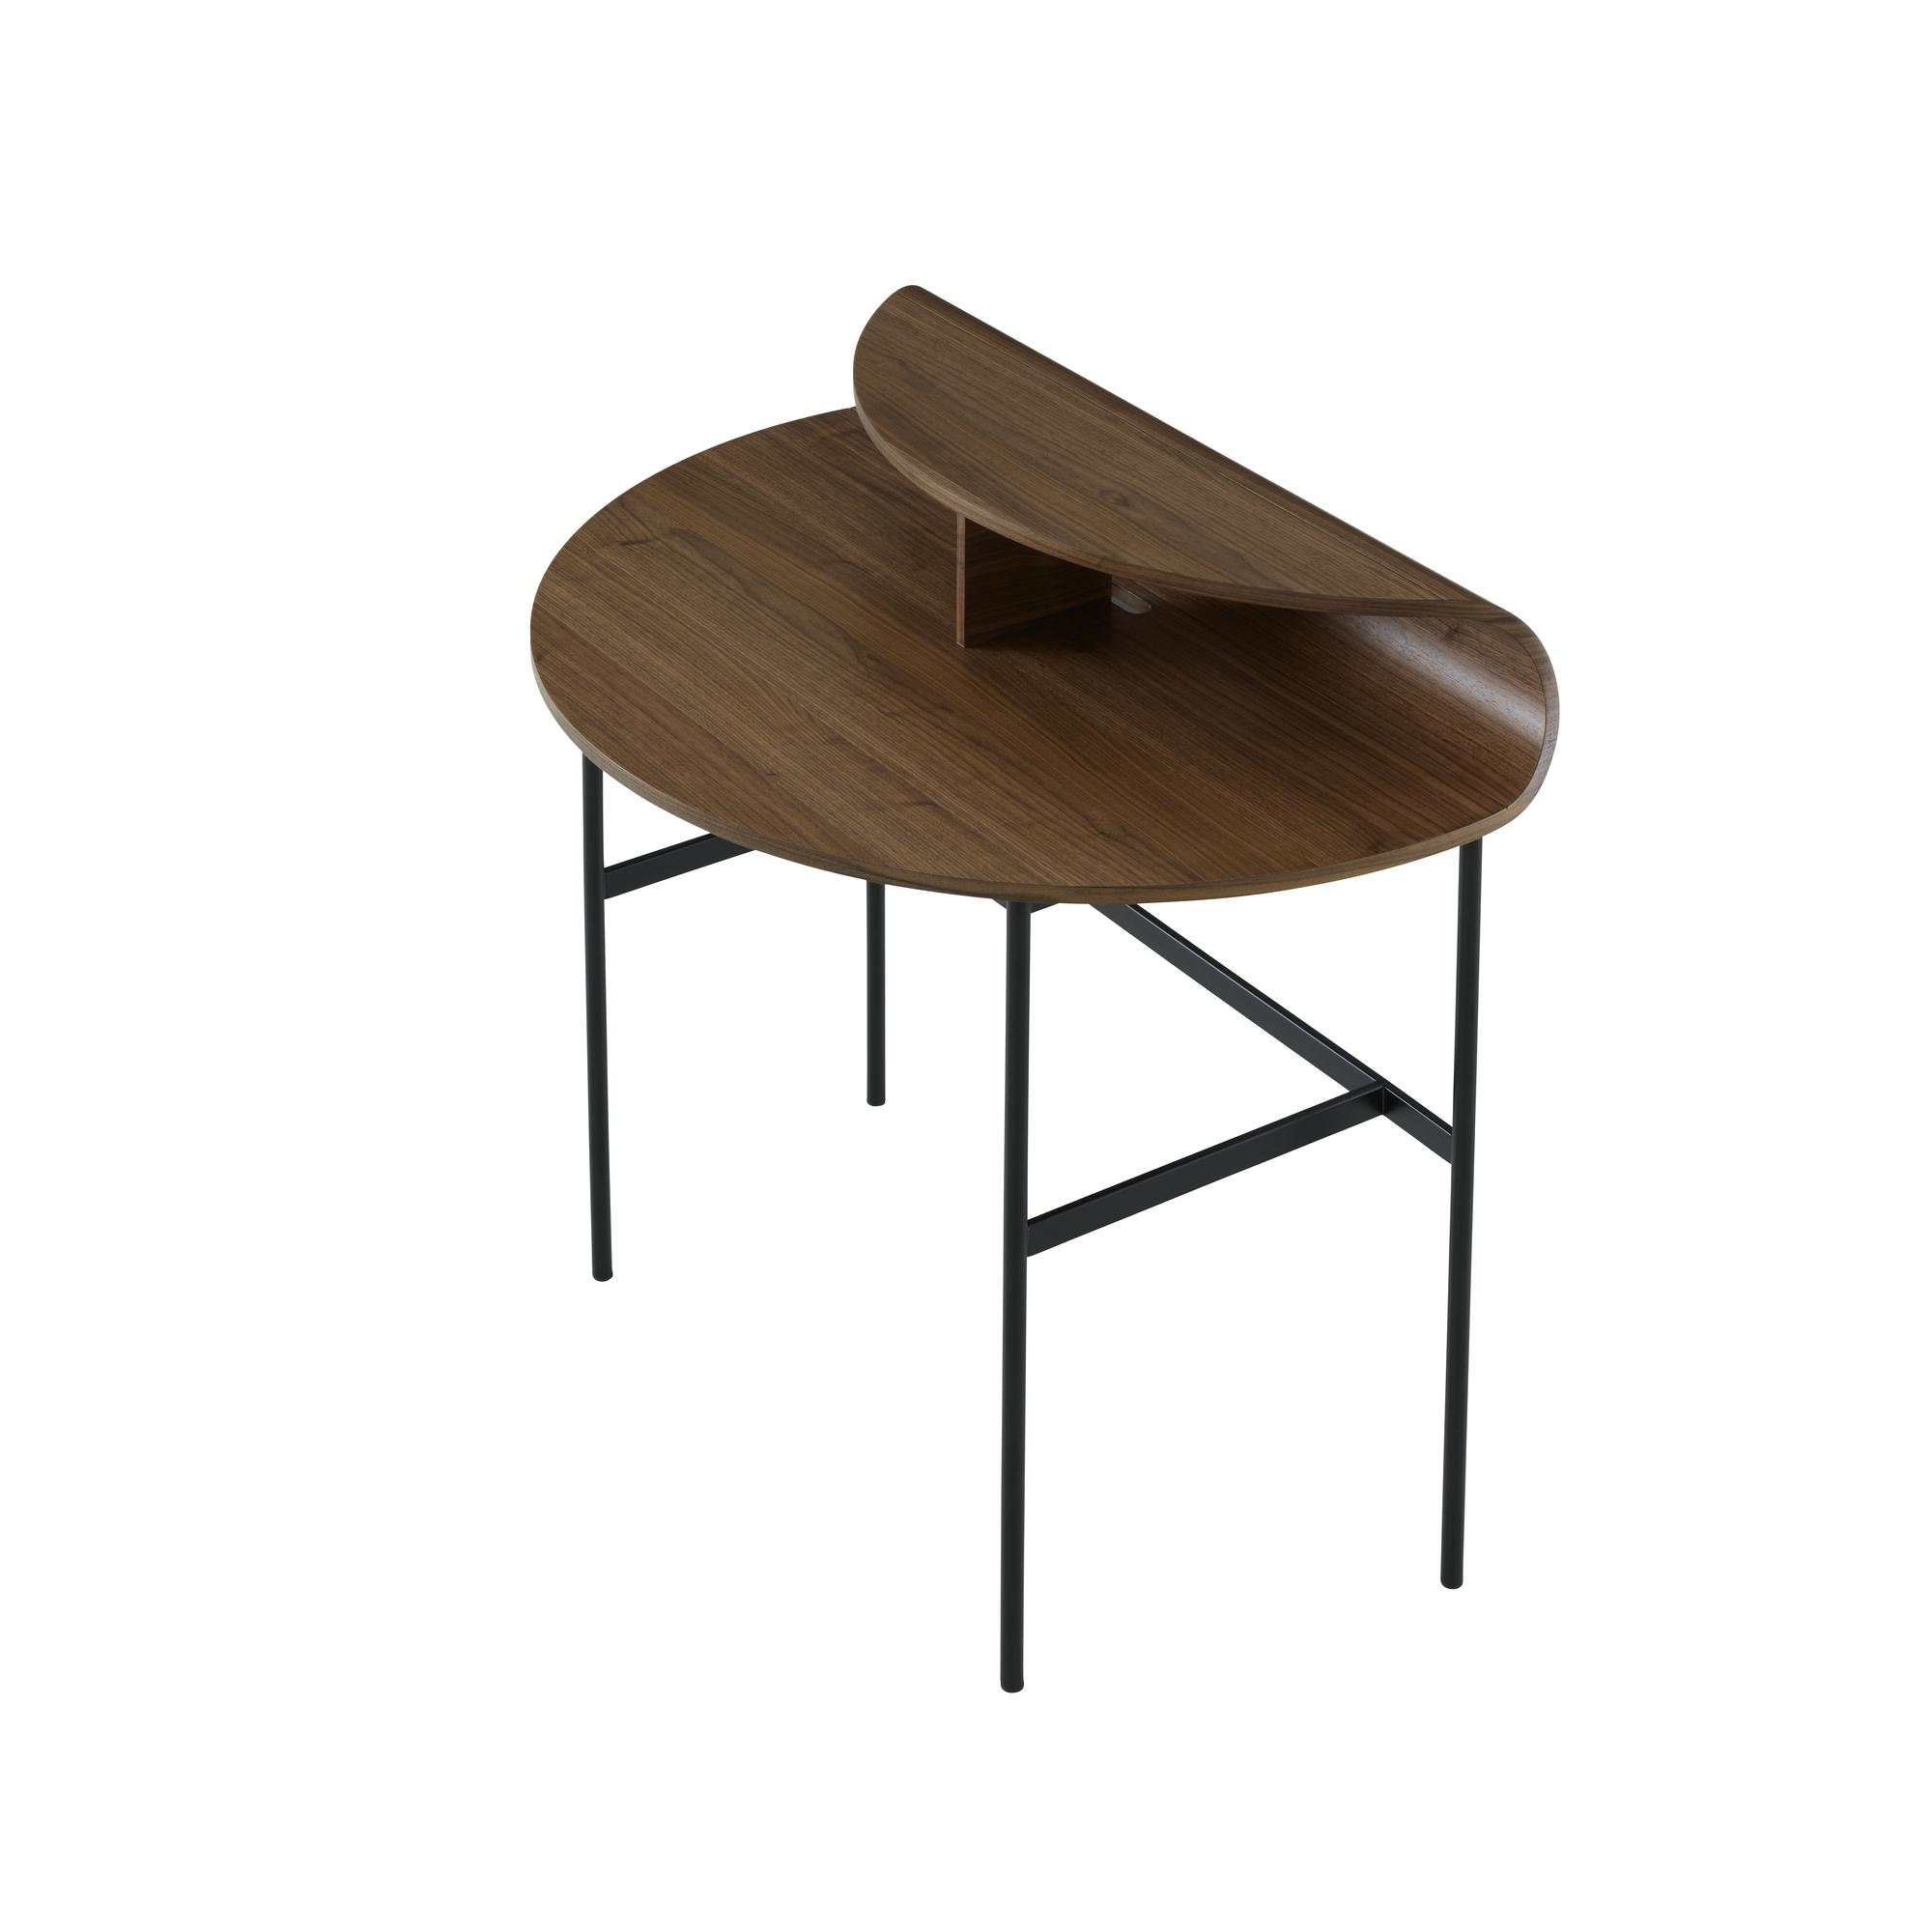 Roll Desks Secretary From Designer Mario Ferrarini Ligne Roset Official Site